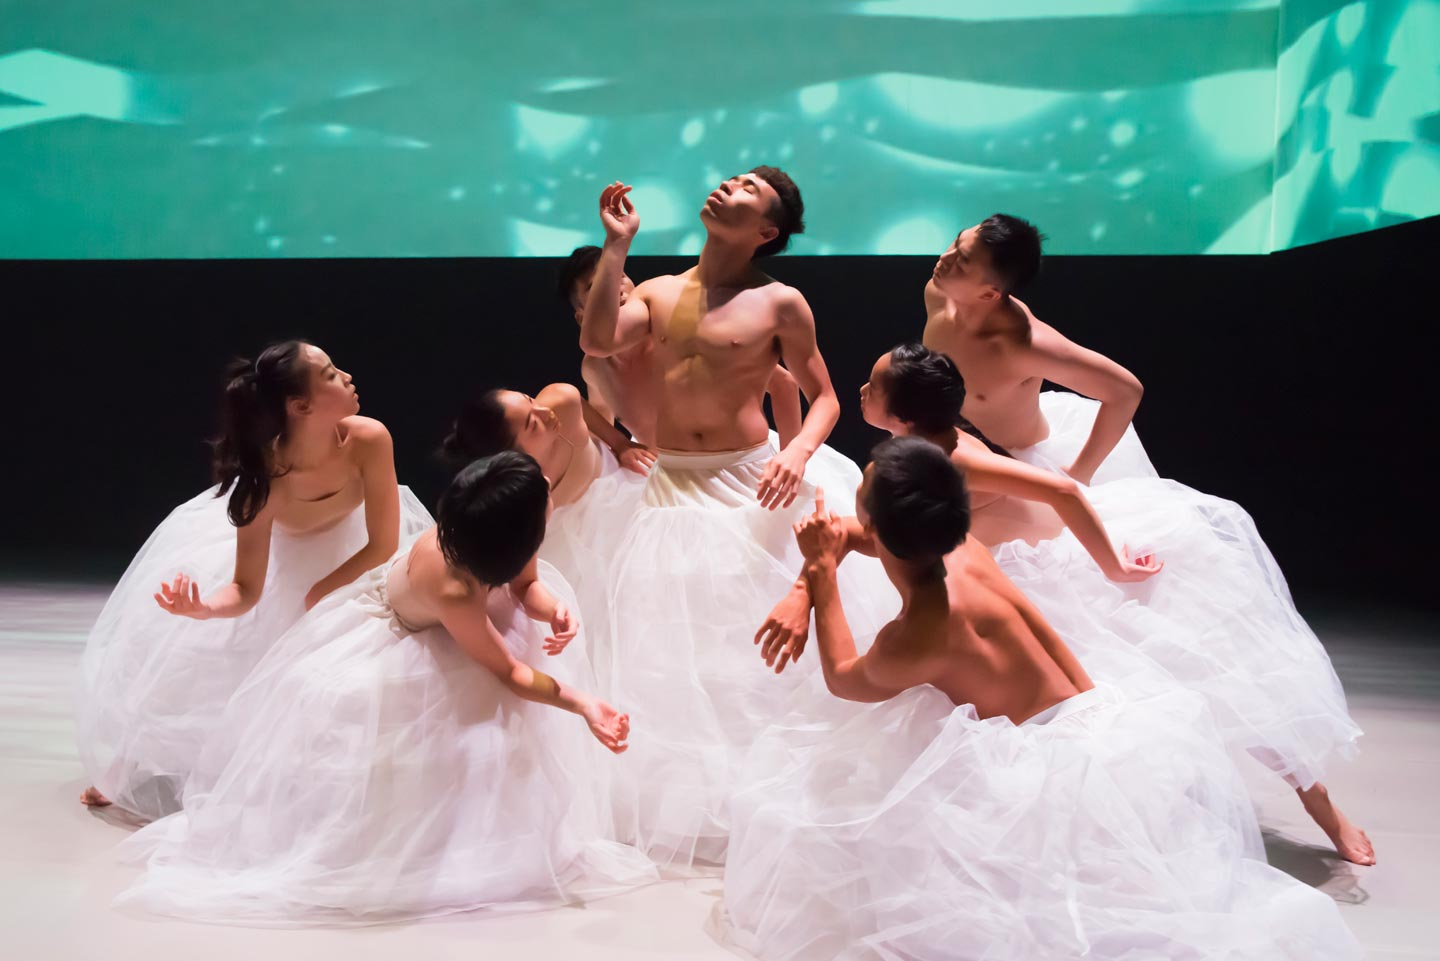 B.Dance (Taiwan) in Po-tseng Chai's Floating Flowers. Photo © Chou Mo